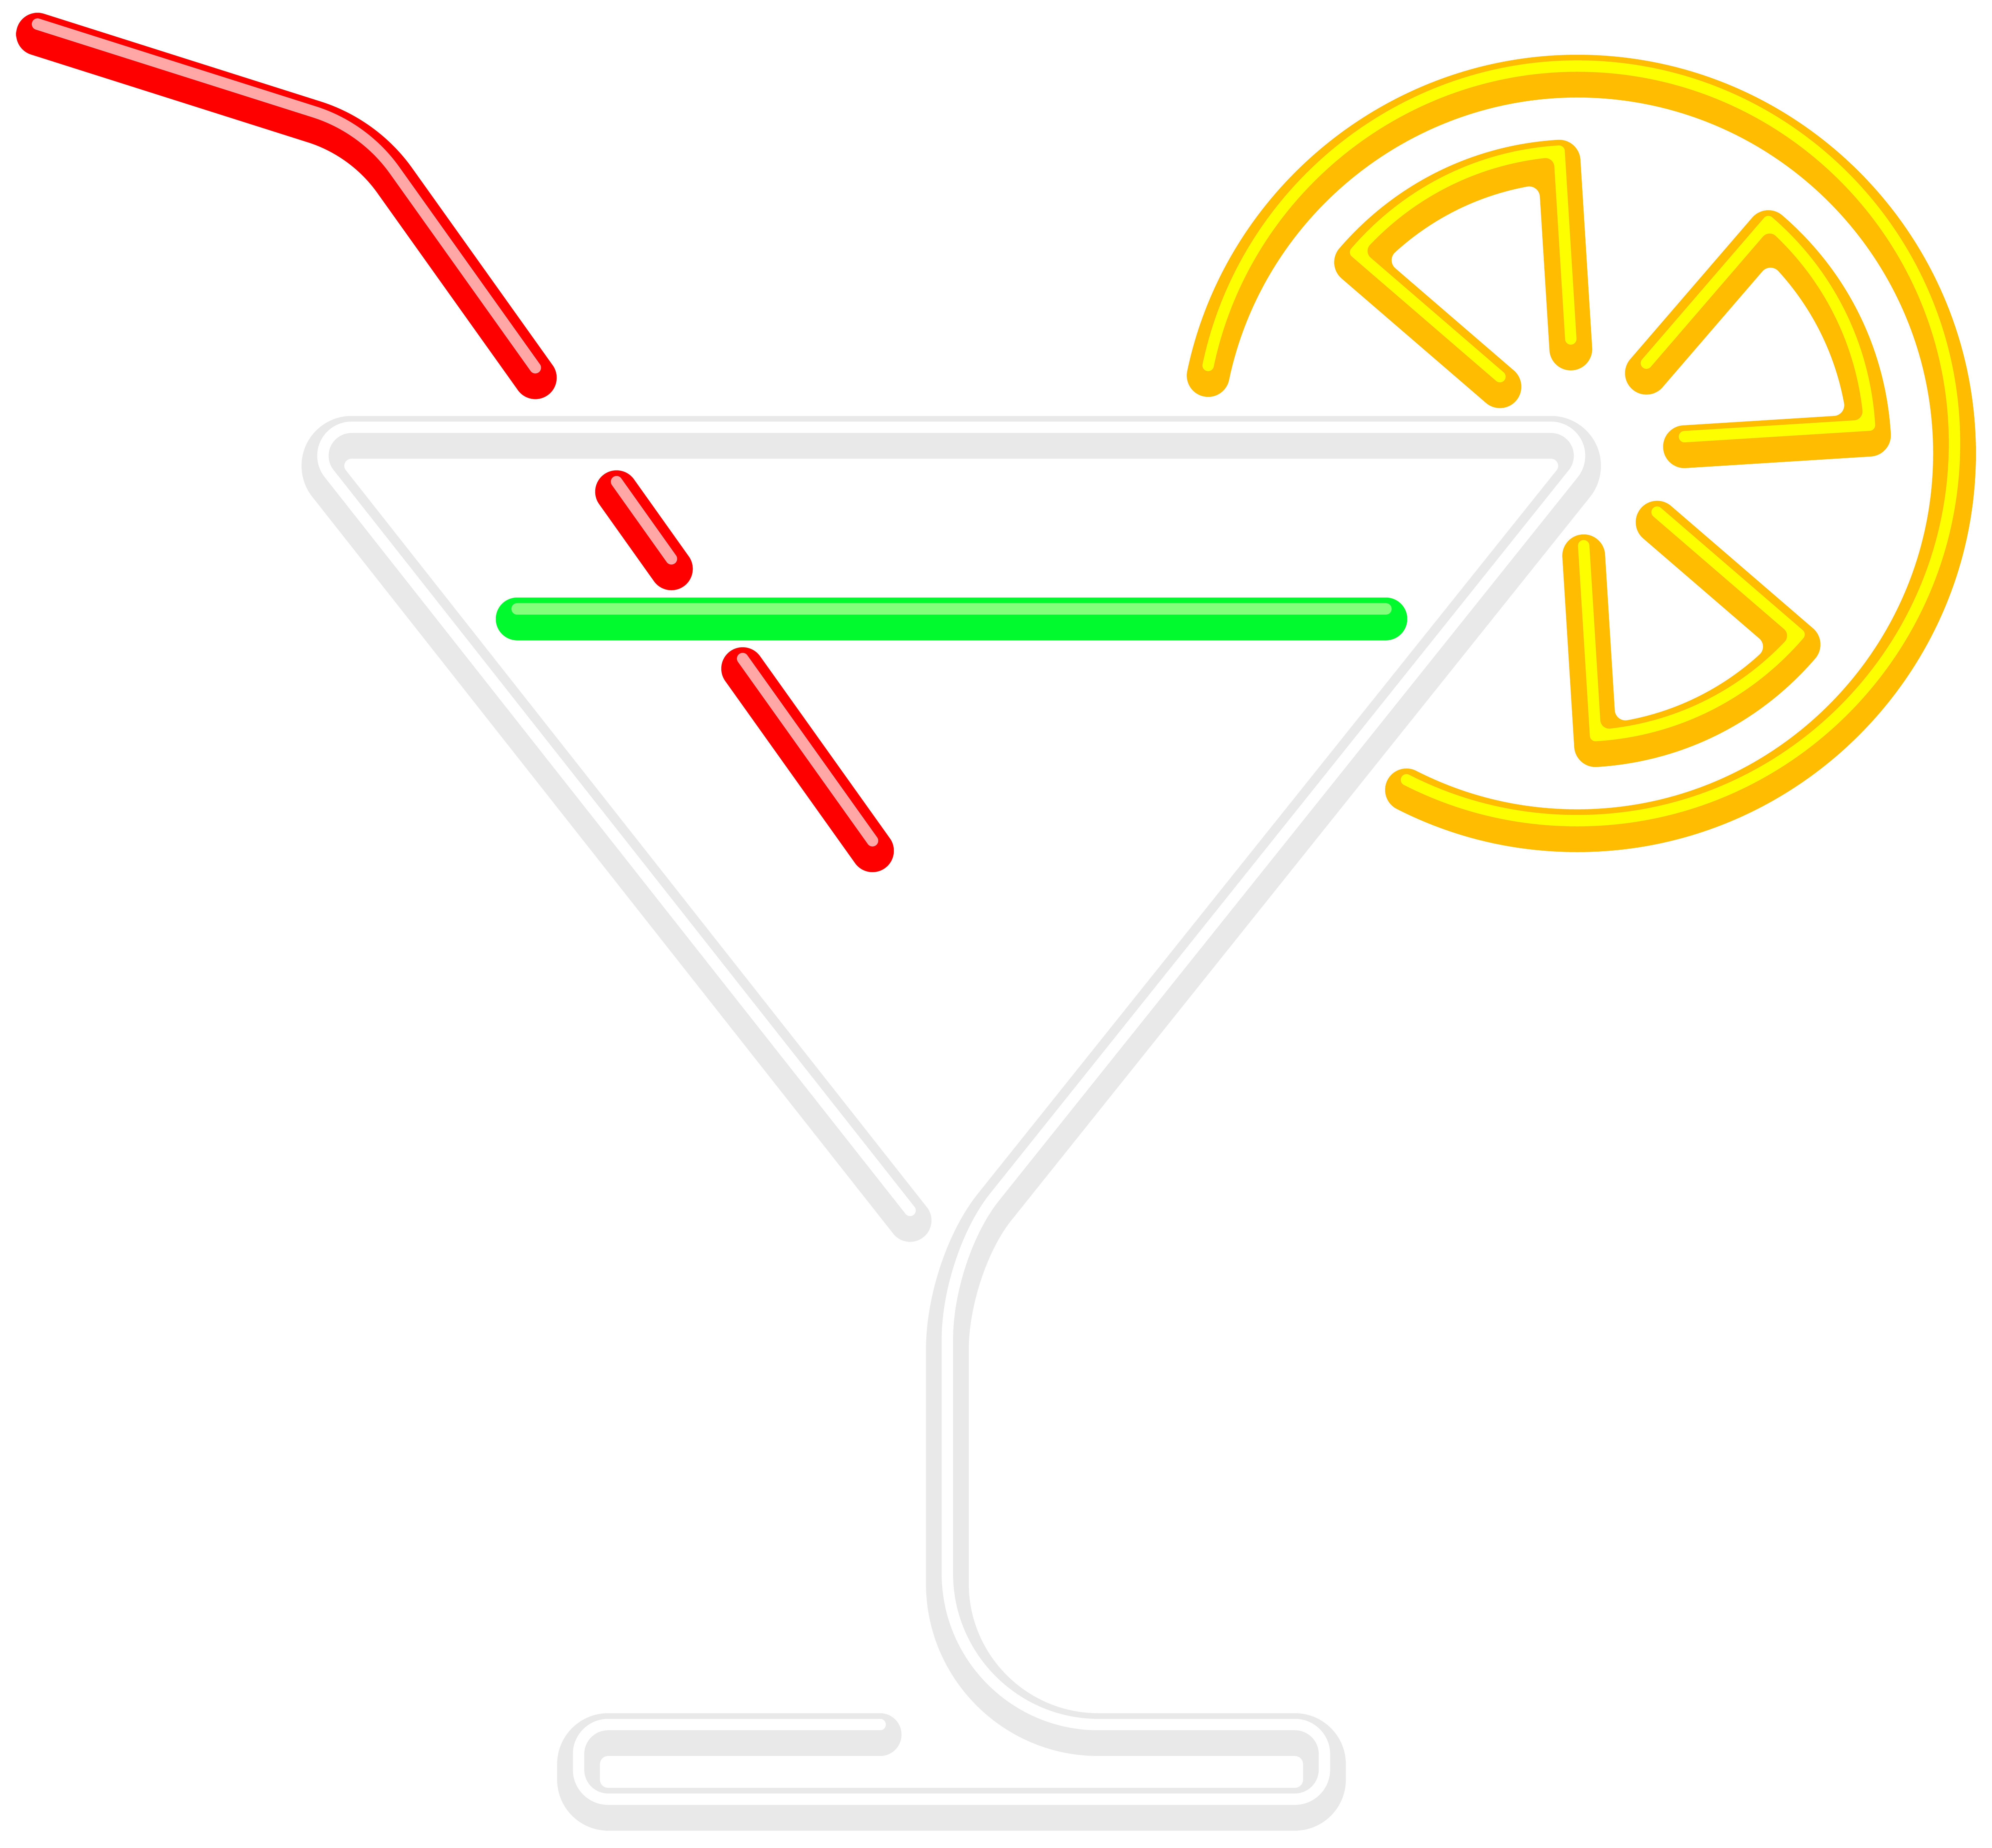 Neon background png. Cocktail clip art image